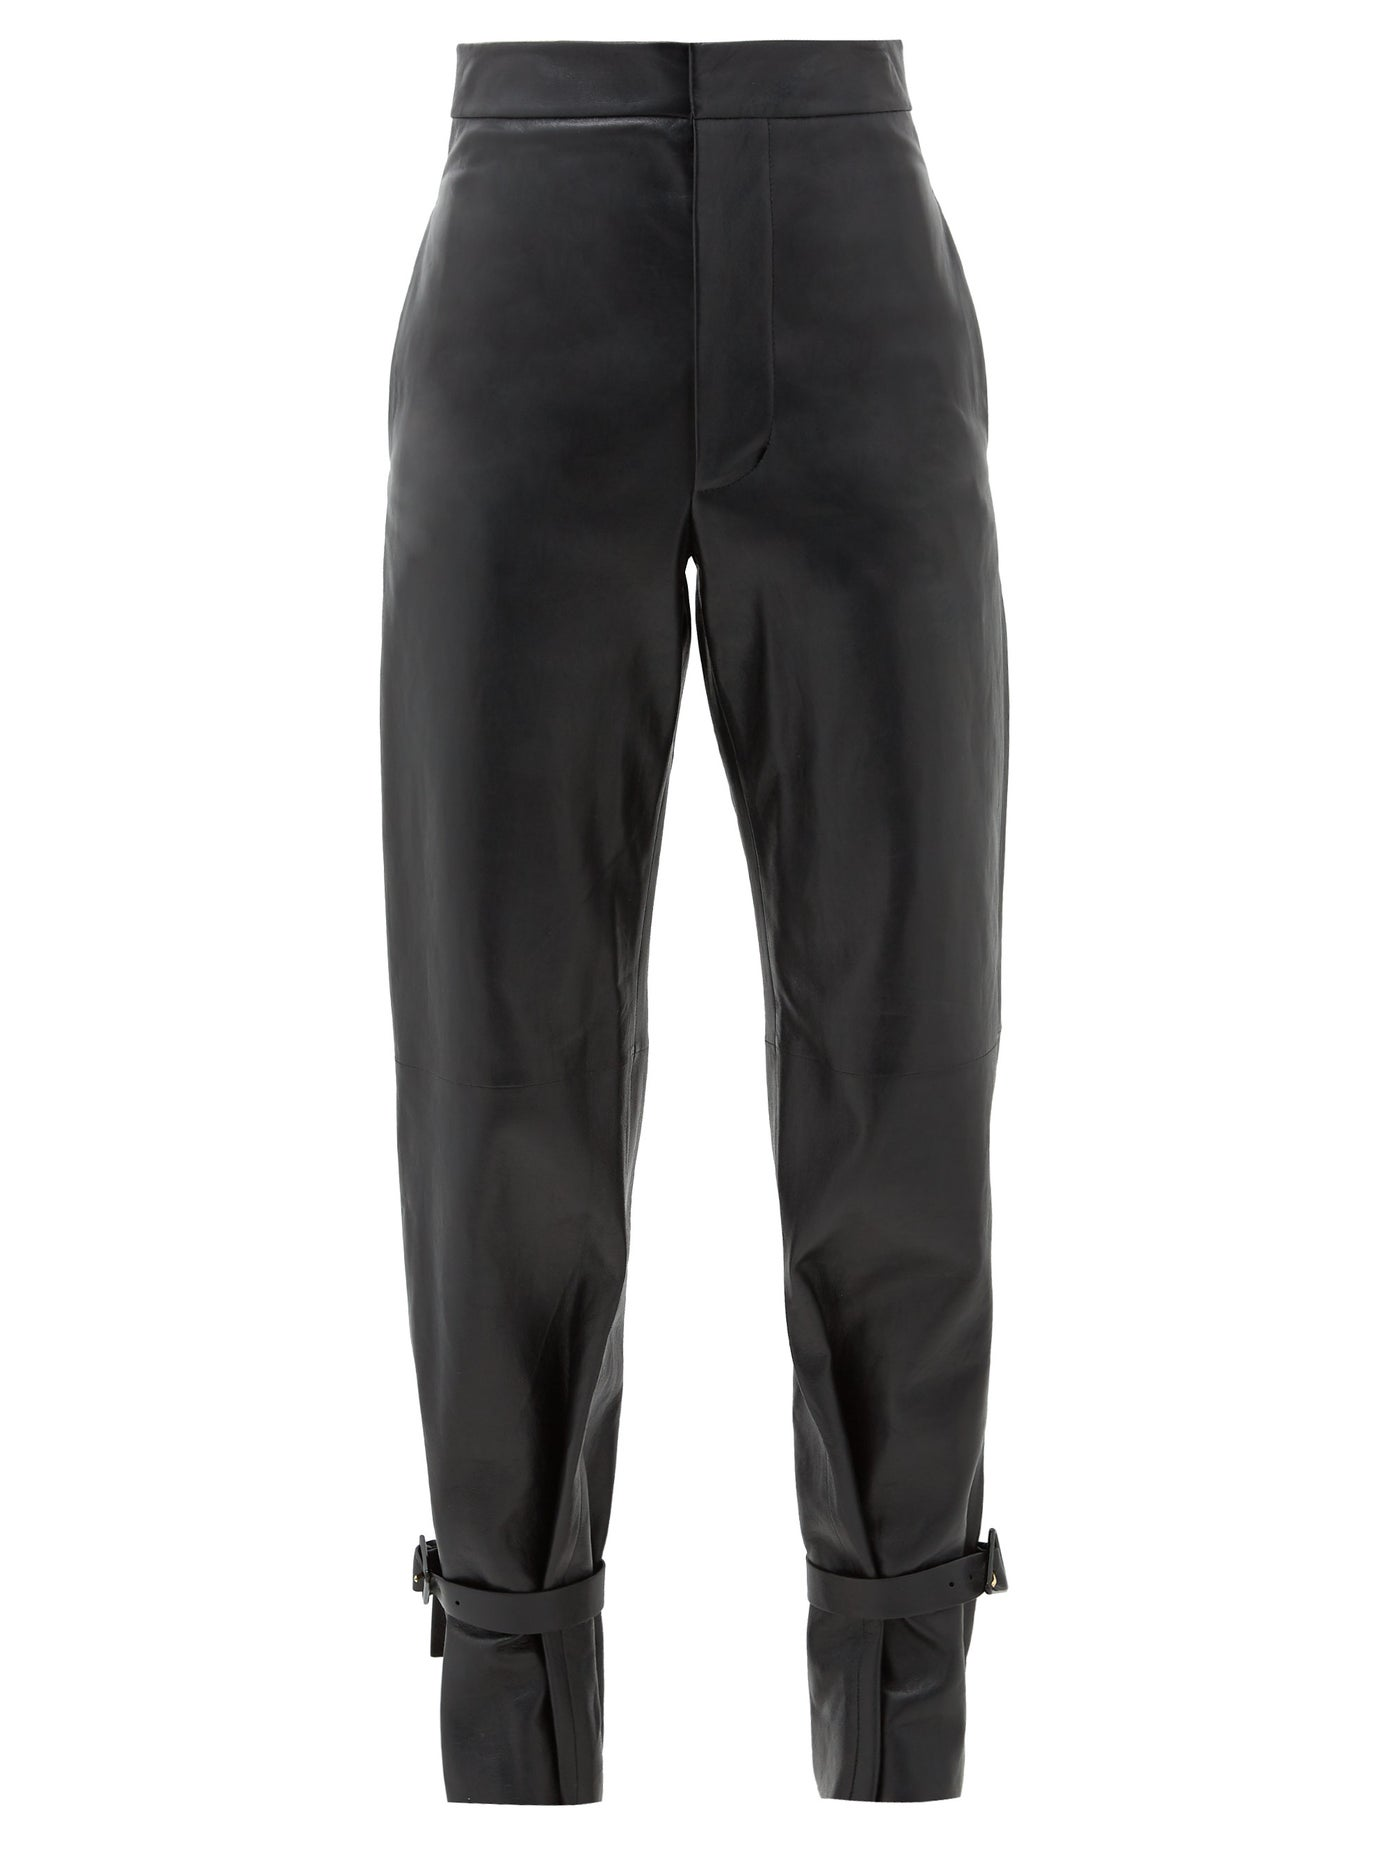 Tied-Cuff Leather Wide-Leg Trousers by Bottega Veneta, available on matchesfashion.com for $2694 Kylie Jenner Pants Exact Product